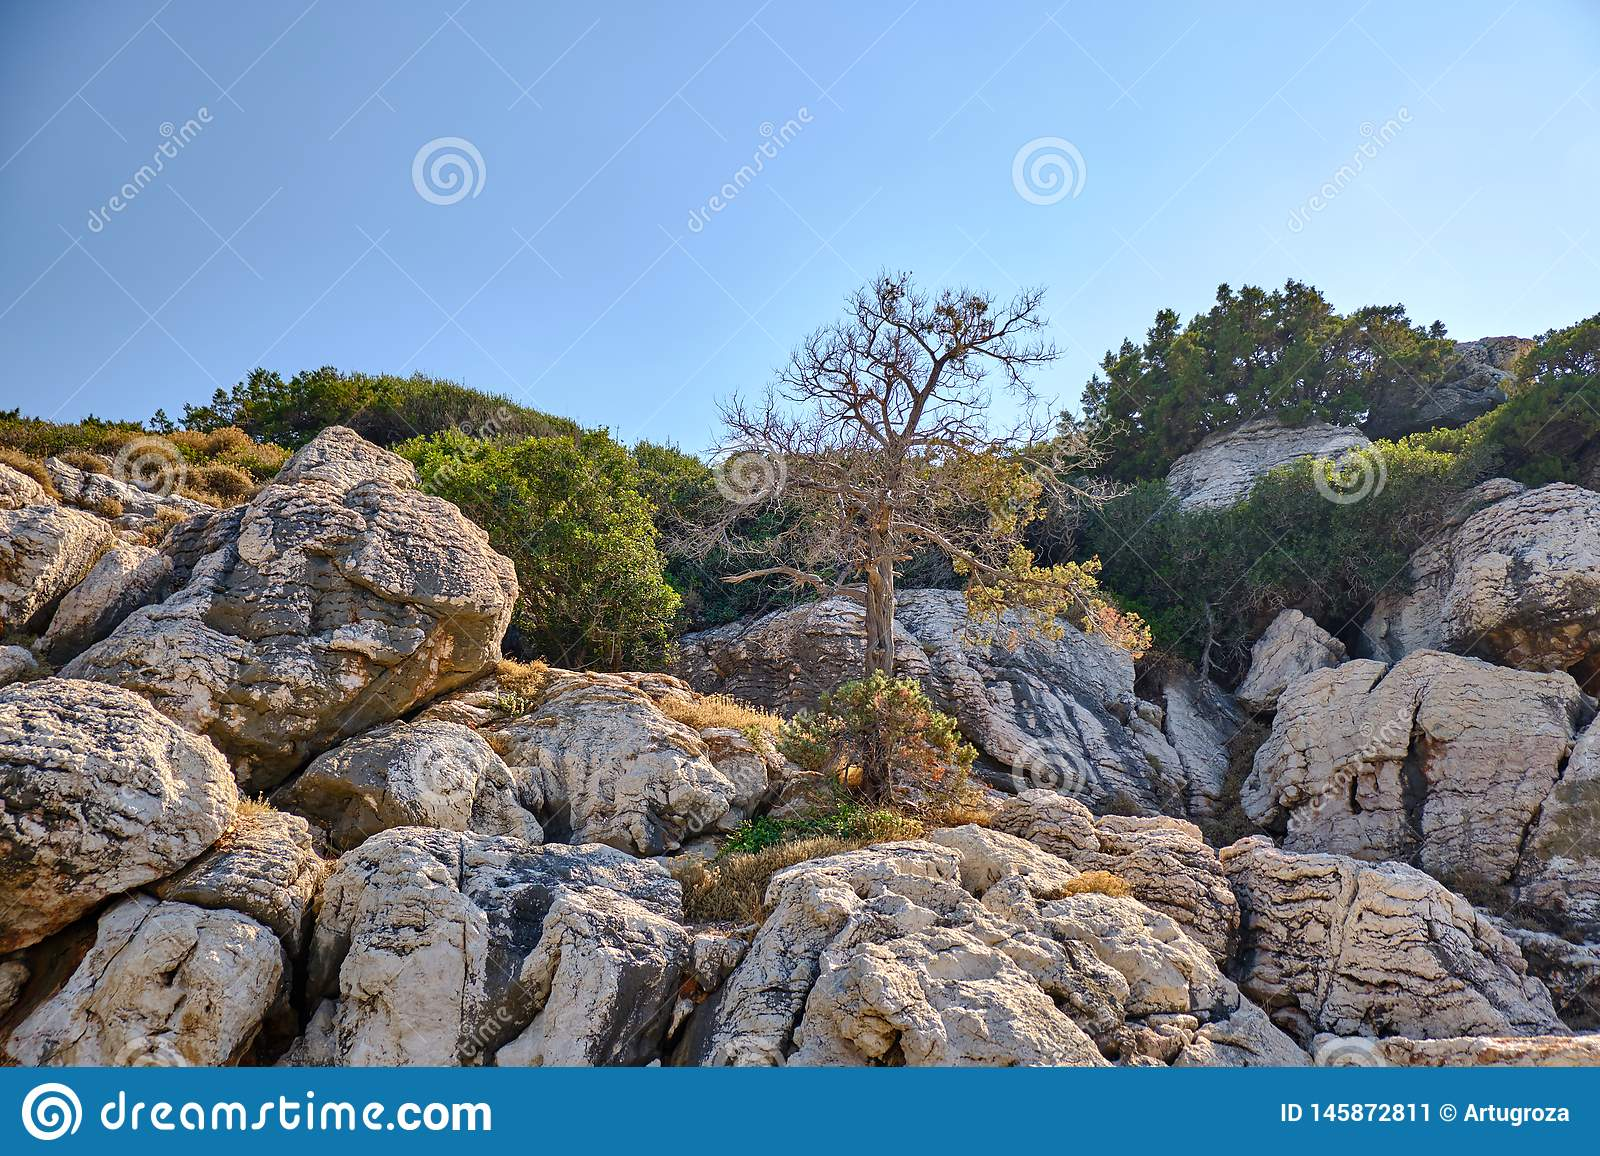 Tree growing among the stones on the mountain. 2019 stock image